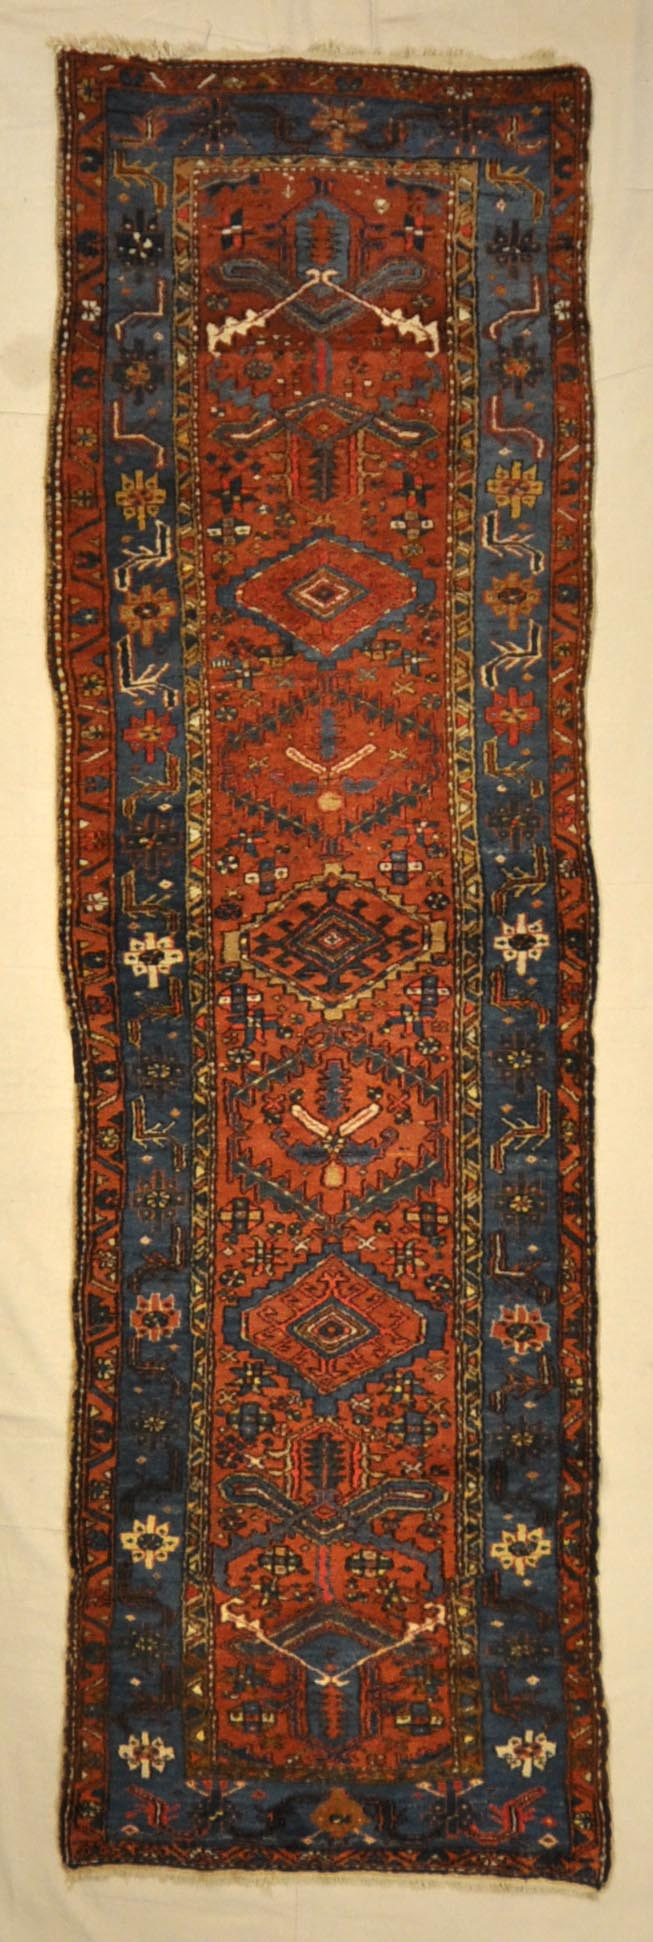 Antique Wedding Bijar | Rugs and More | Santa Barbara Design Center